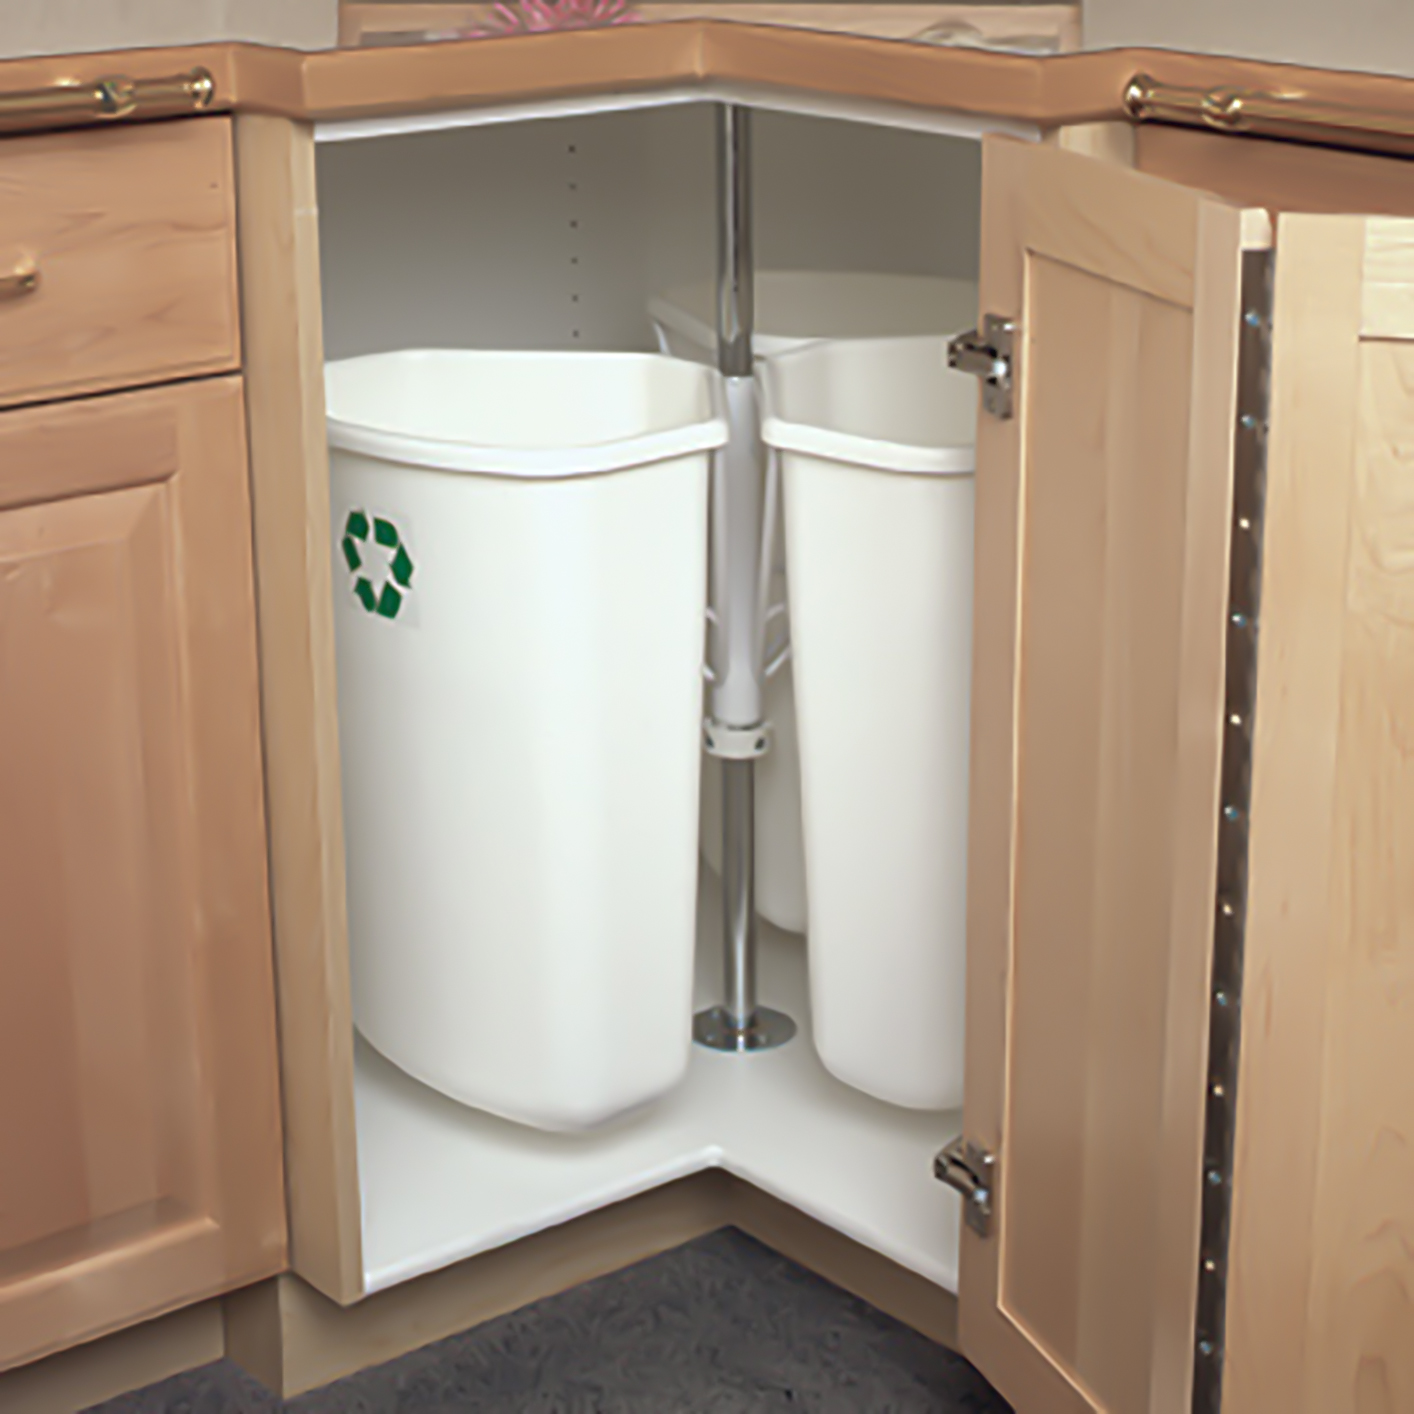 Kitchen Garbage Solutions Corner Recycling Centers 3 32 Qt Bins White Krrc28k